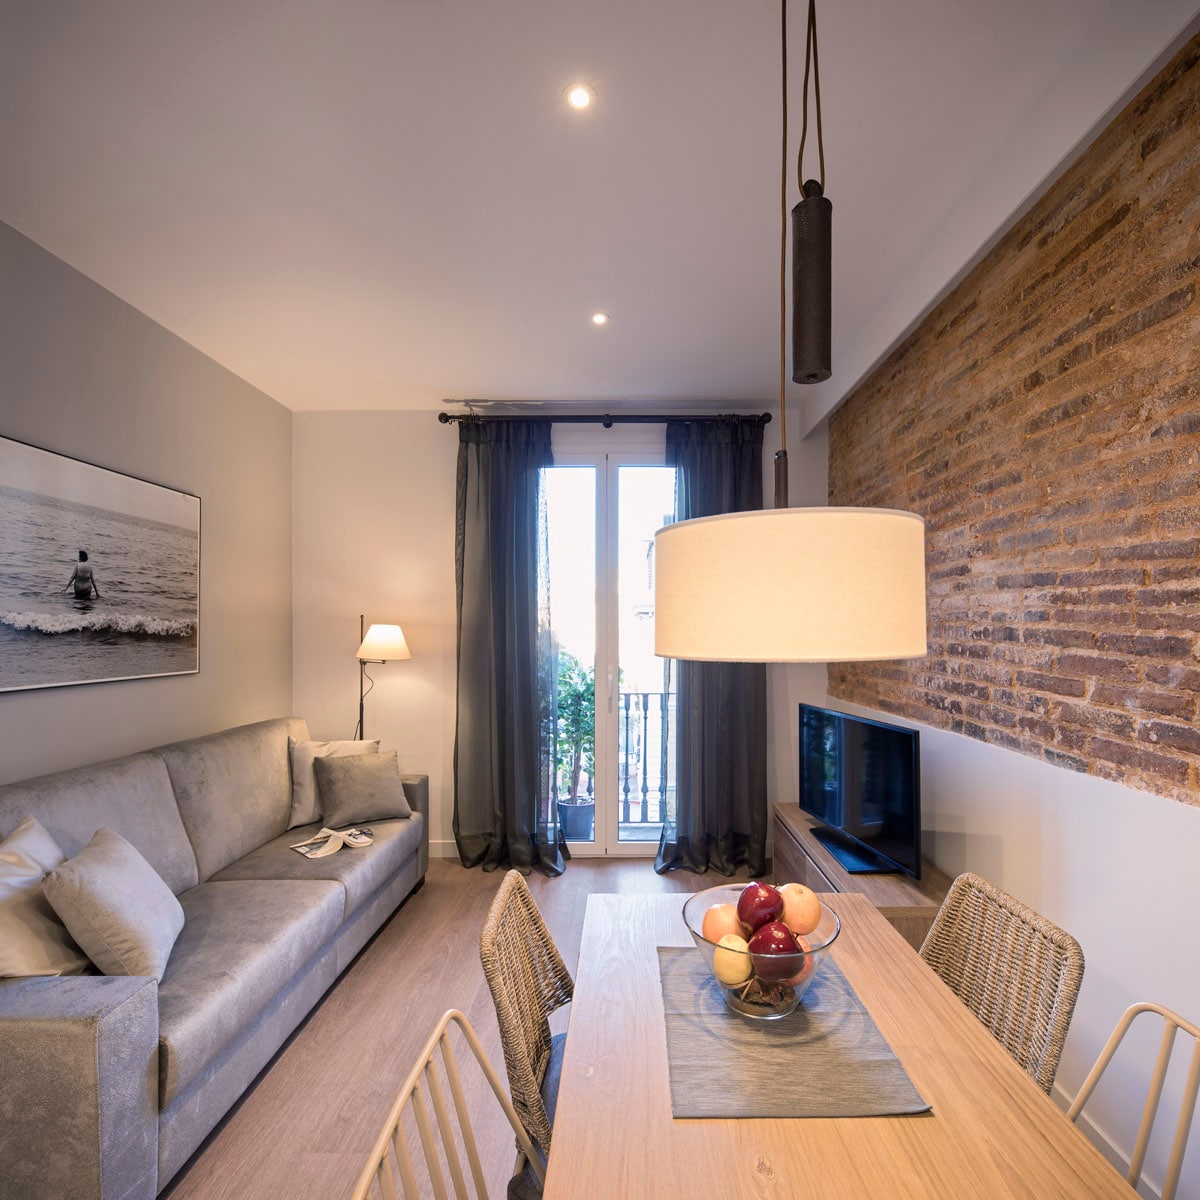 Property Image 2 - Wonderful City Centre Two Bedroom Apartment in Eixample